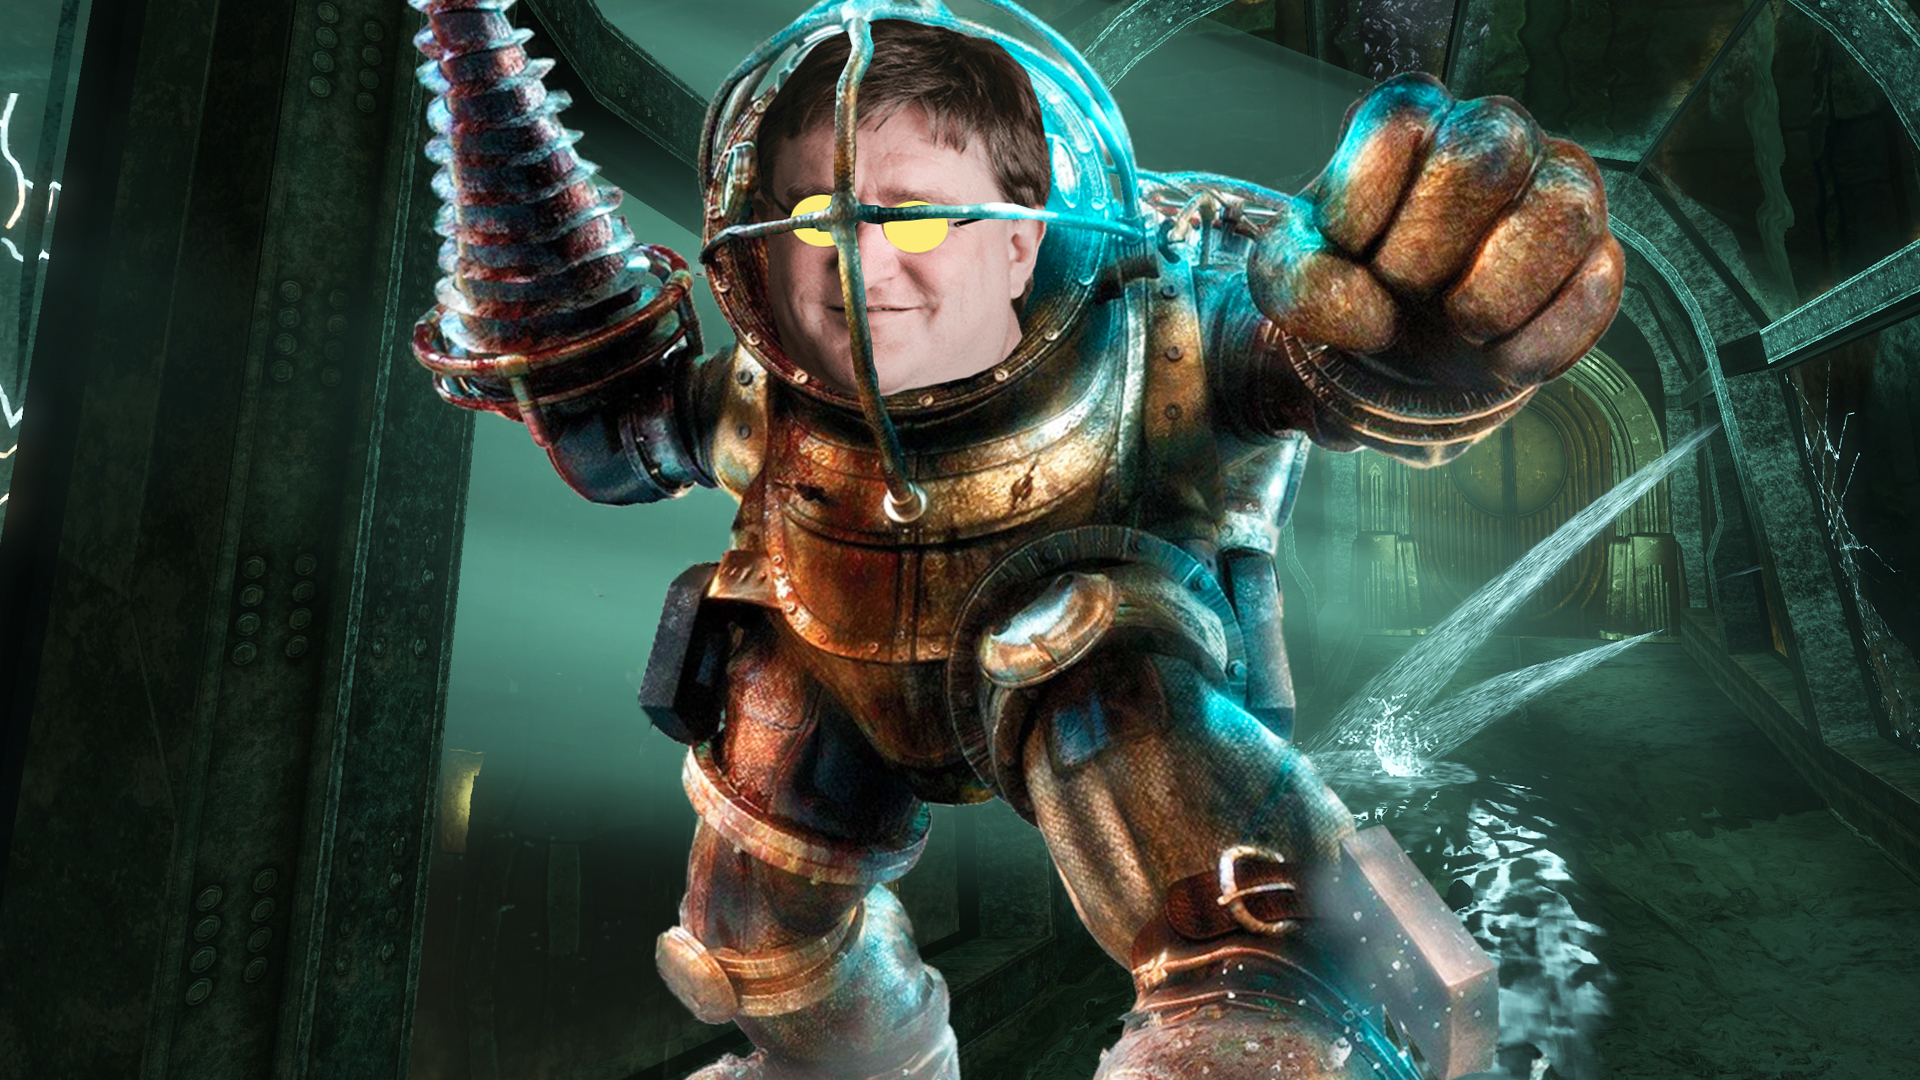 A Big Daddy from BioShock, but with the face of Valve president Gabe Newell